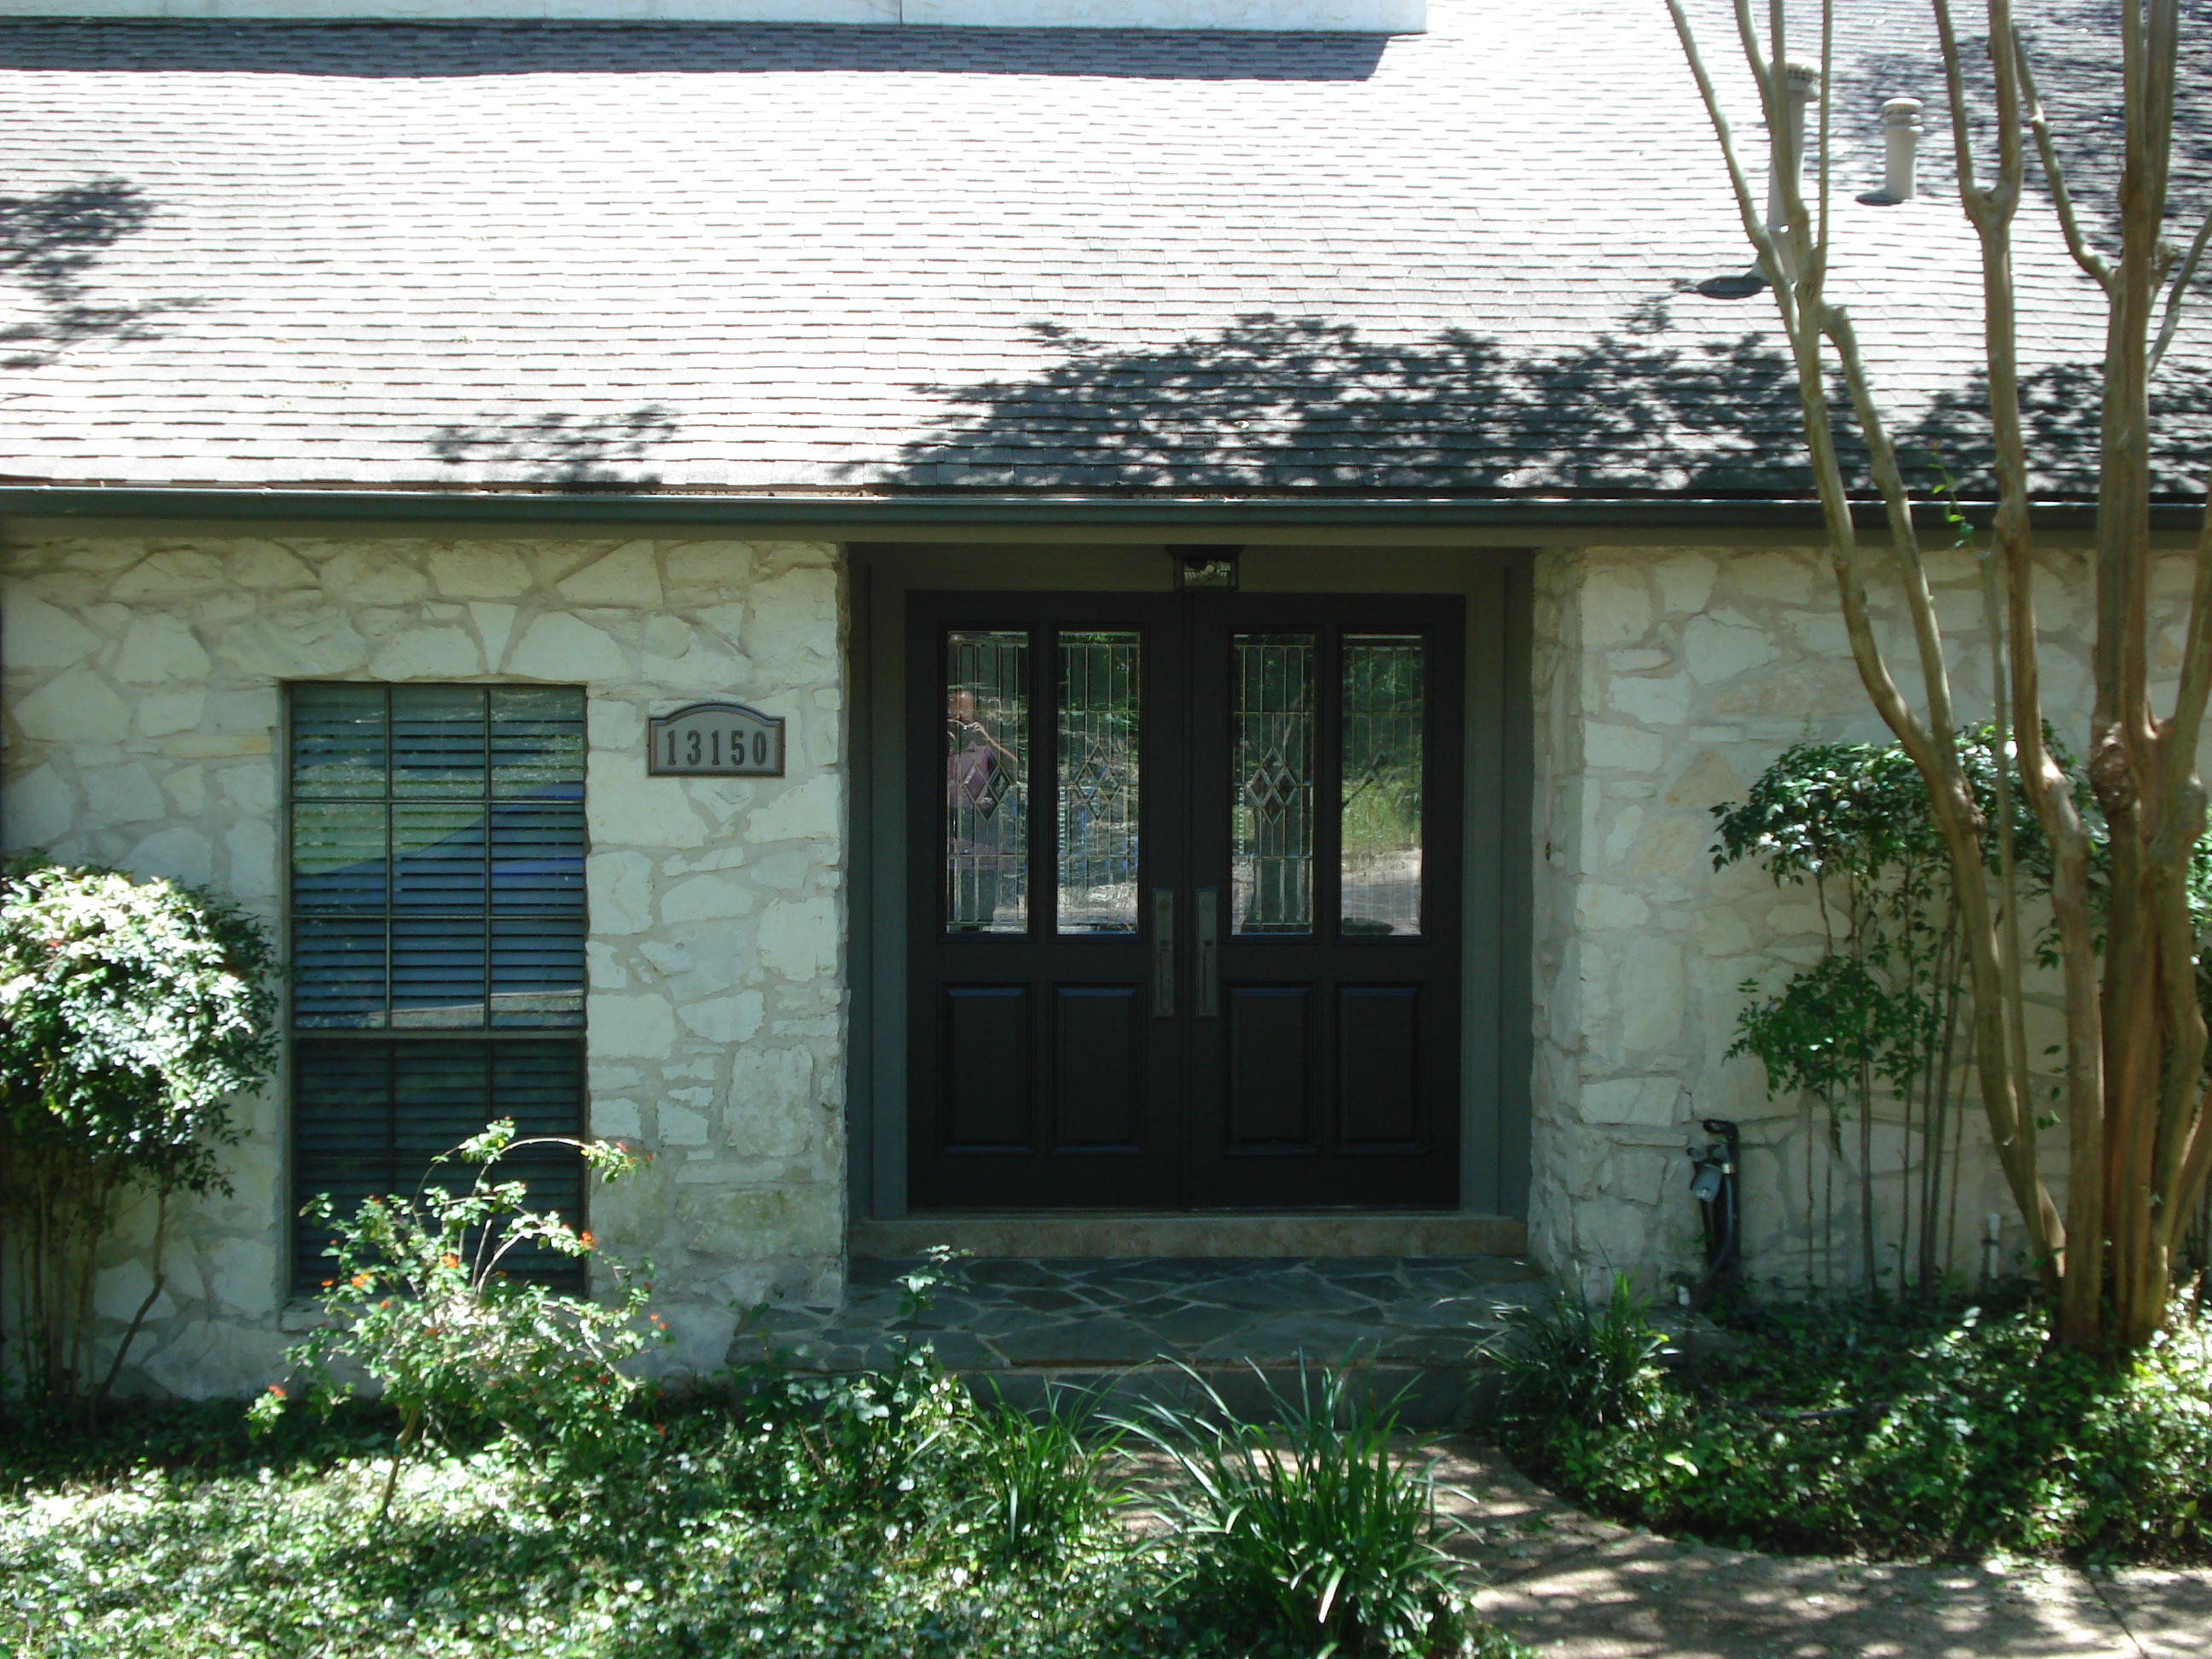 San Antonio Hunters Creek North Home For Sale at 13150 Queens Forest 78230